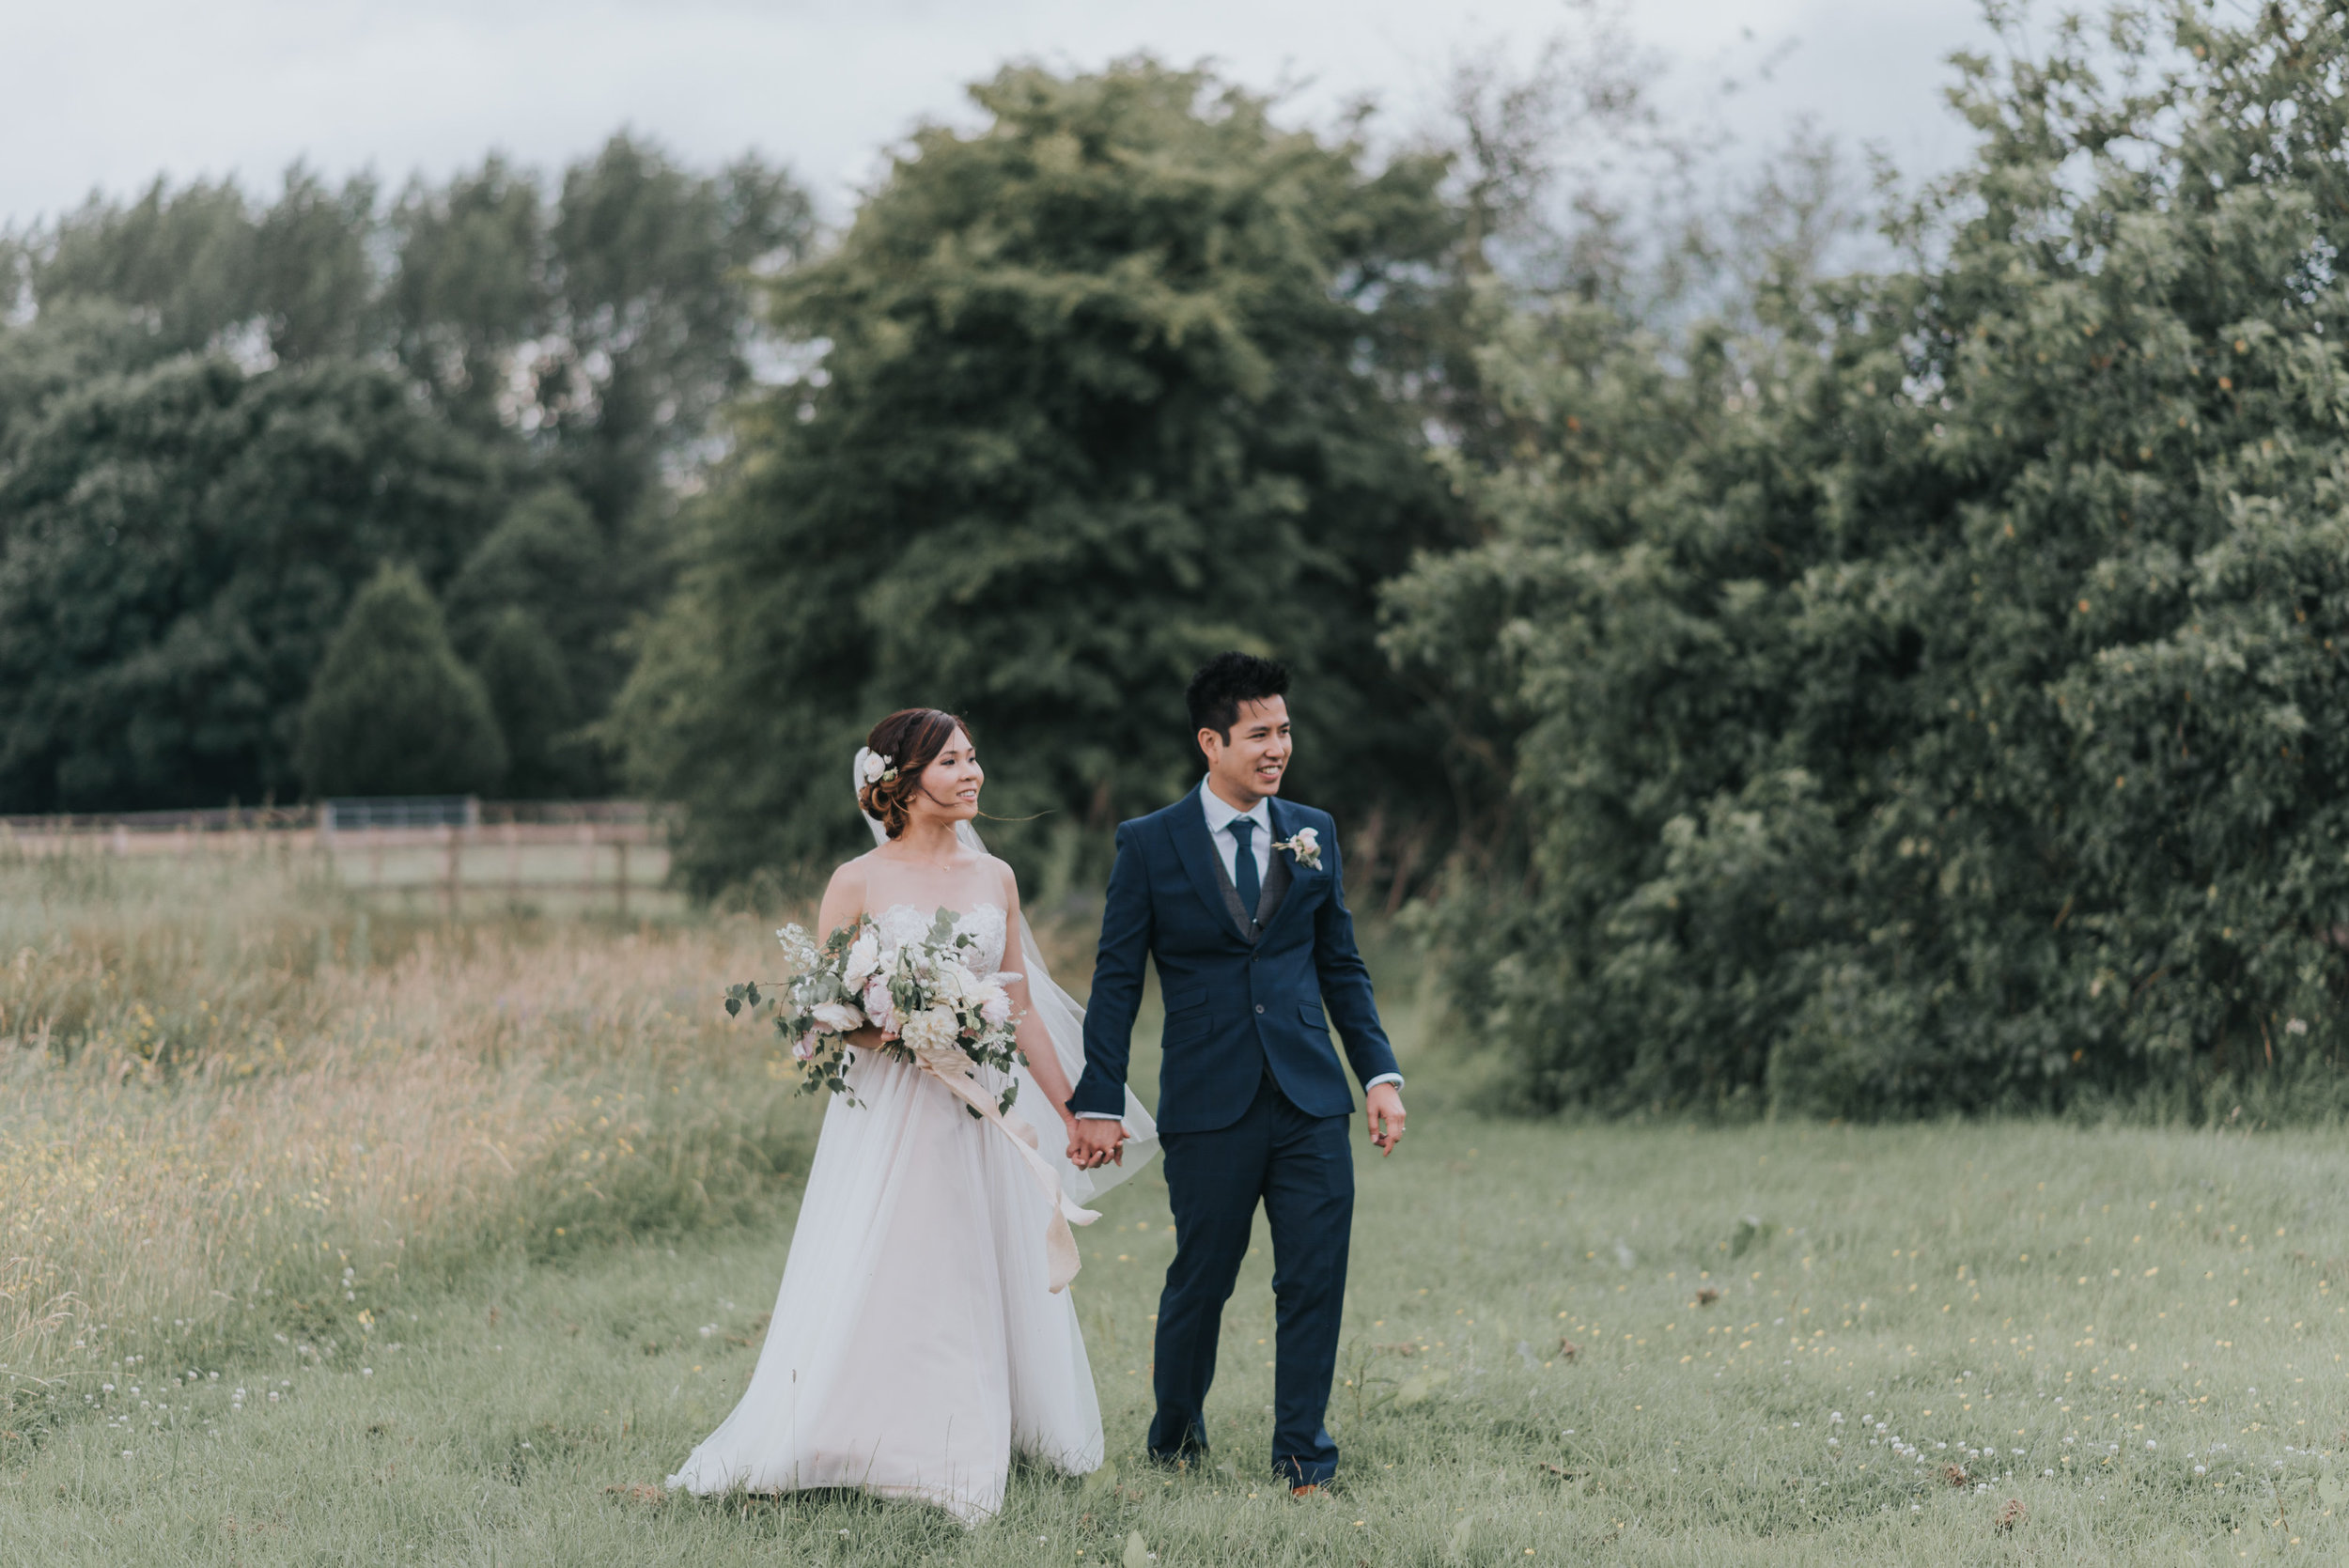 Cheshire bride and groom florals